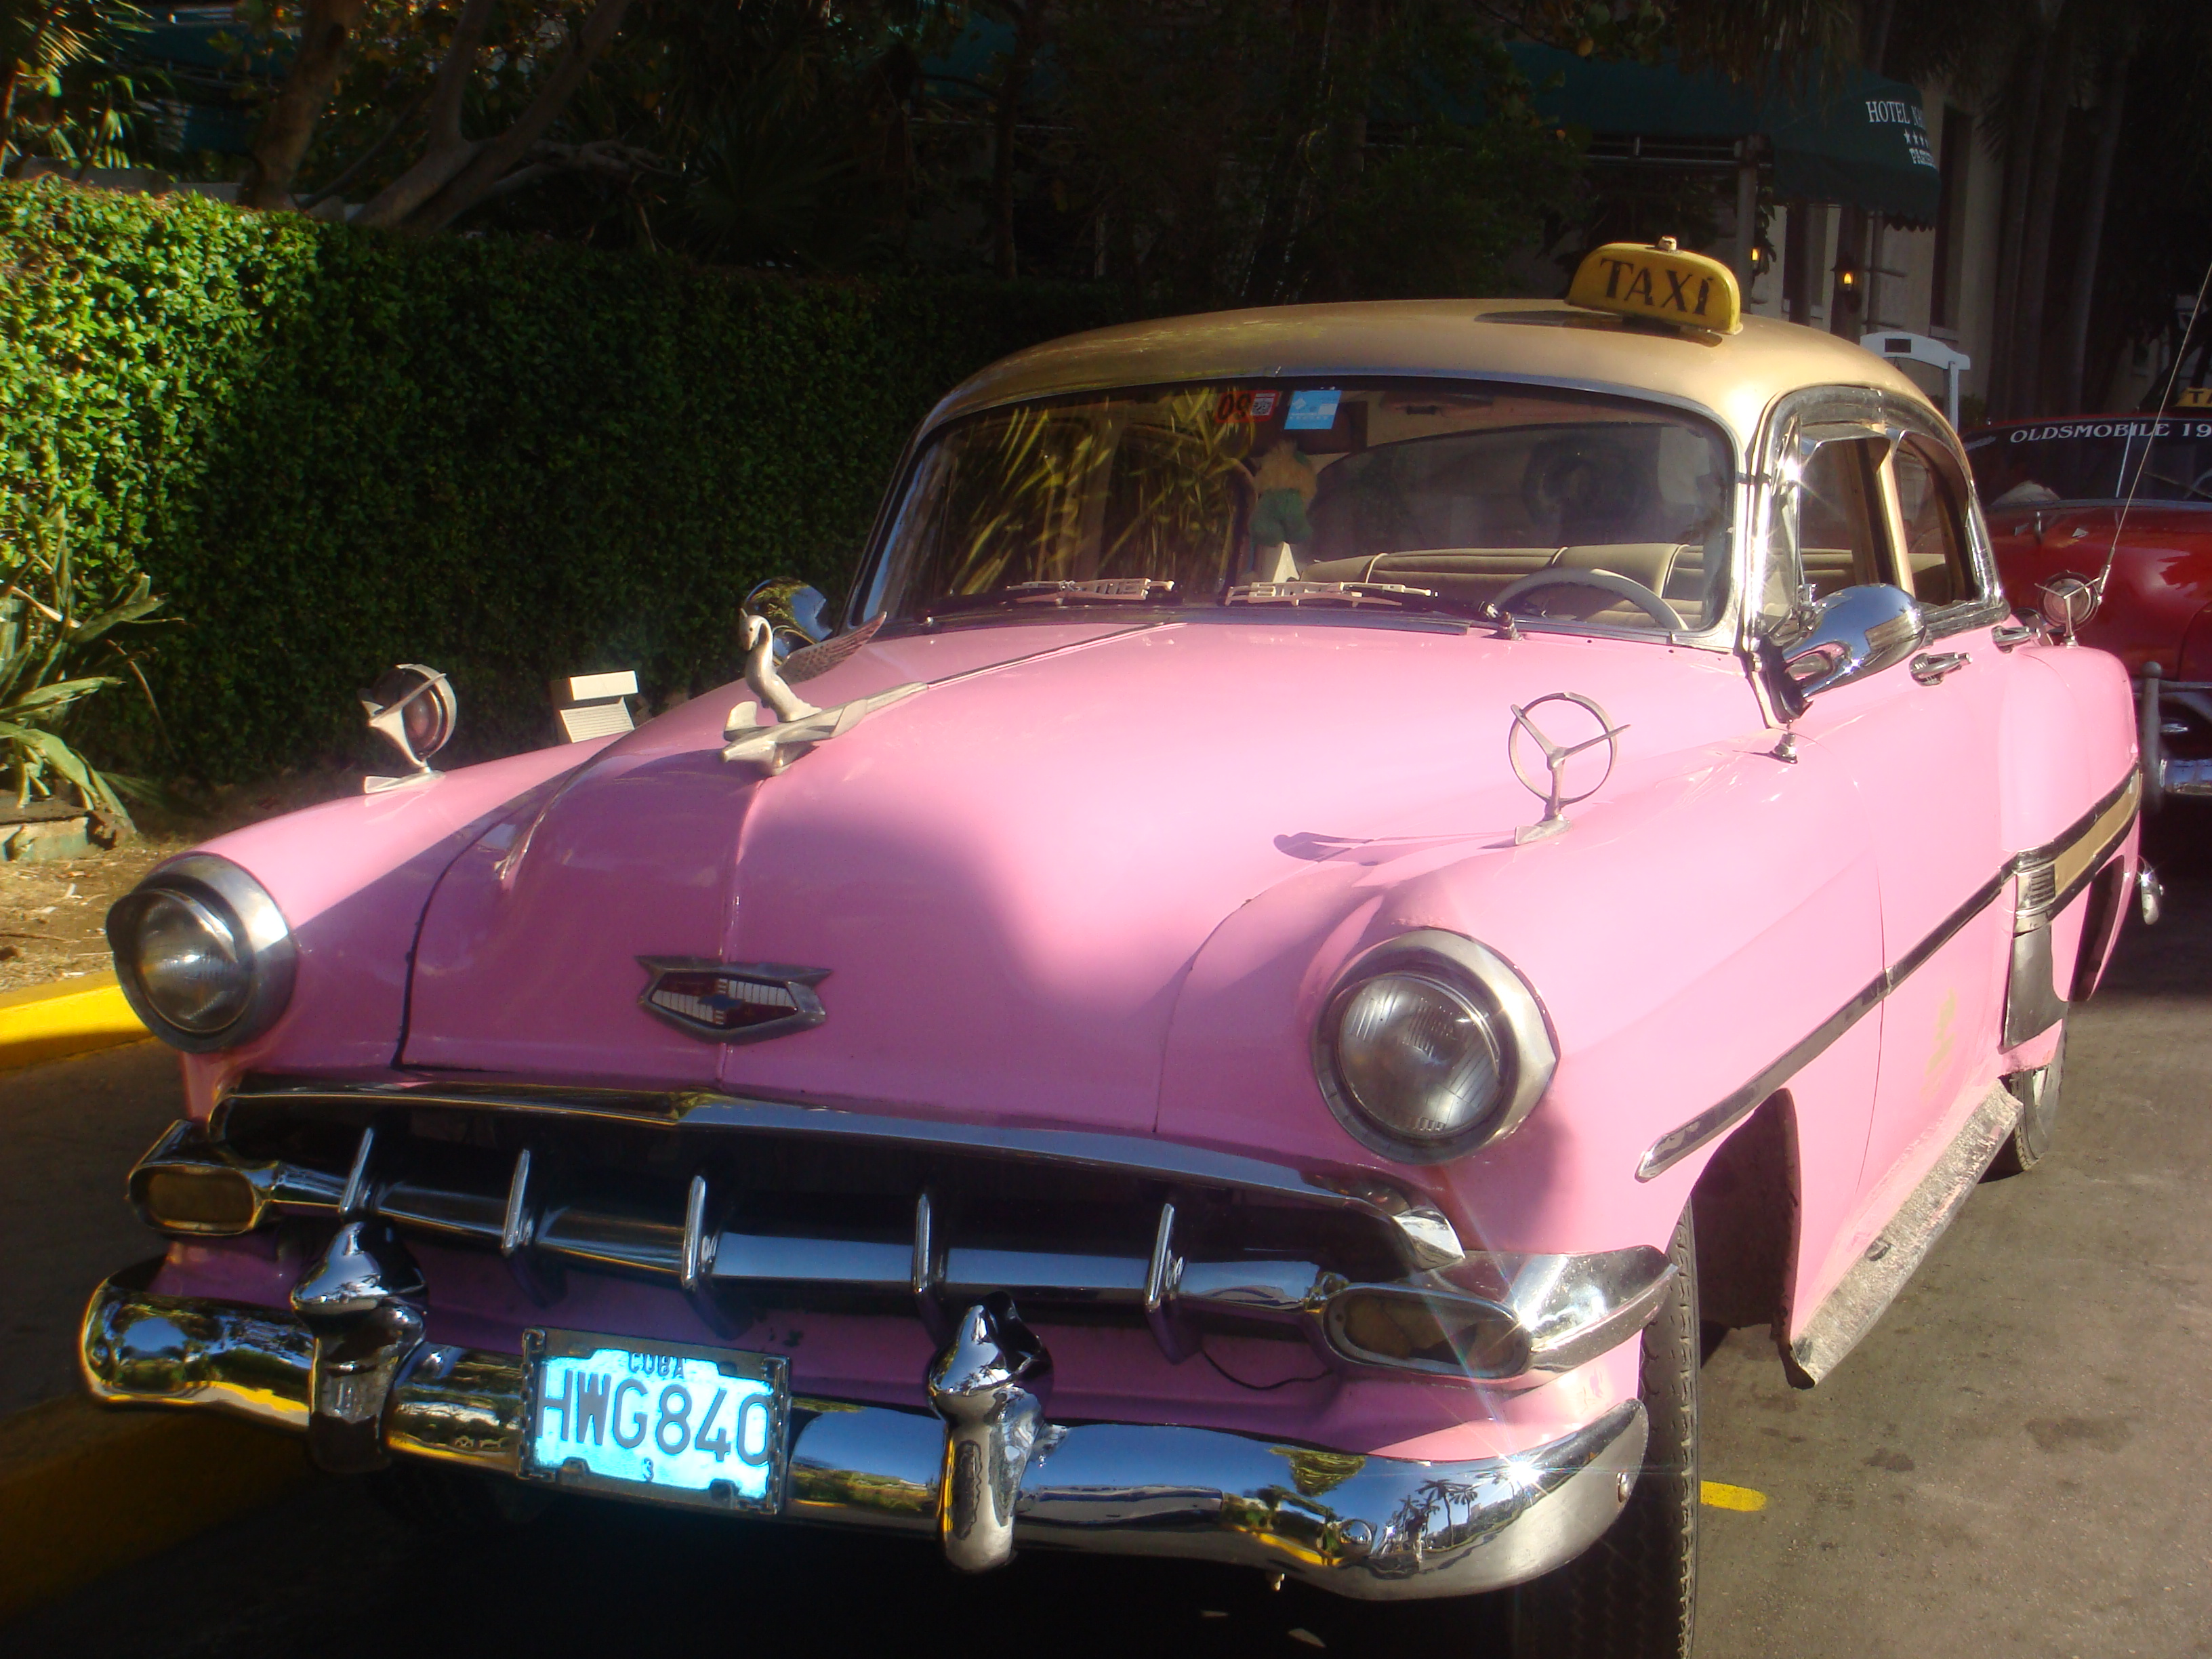 Old fashioned pink taxi car in Cuba